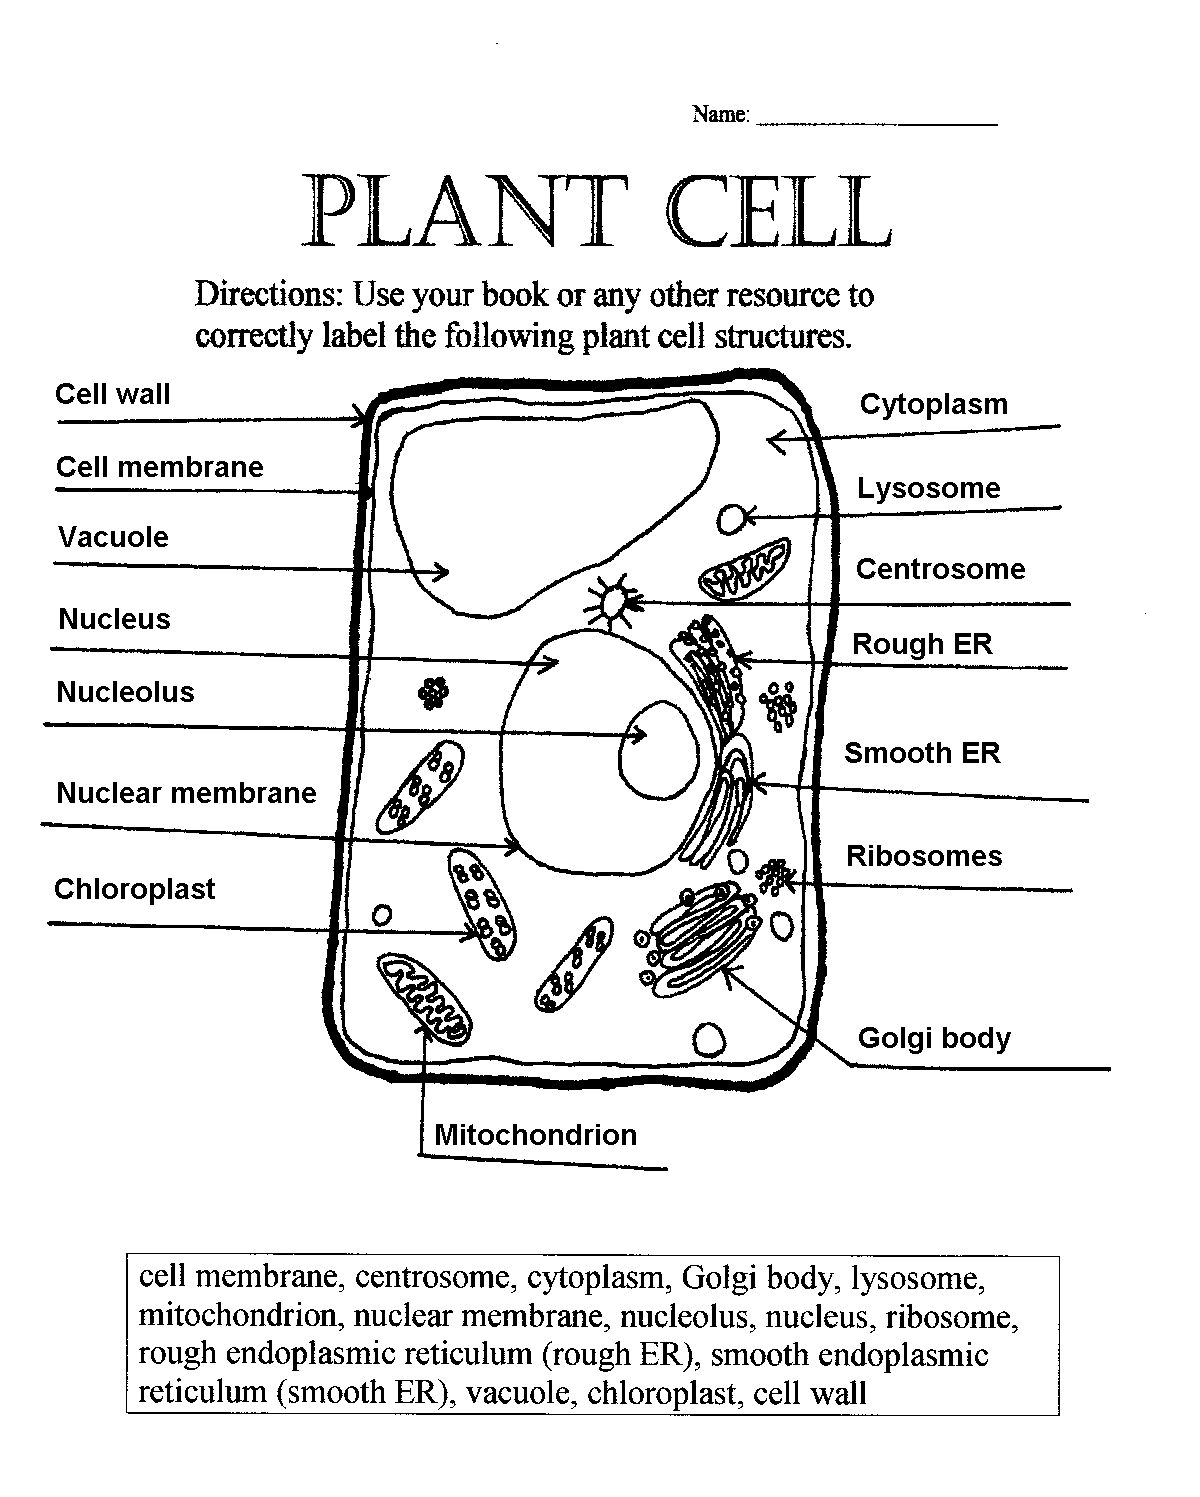 Worksheets Parts Of The Cell Worksheet plant cell parts worksheet with word bank name what makes you tick animal worksheet